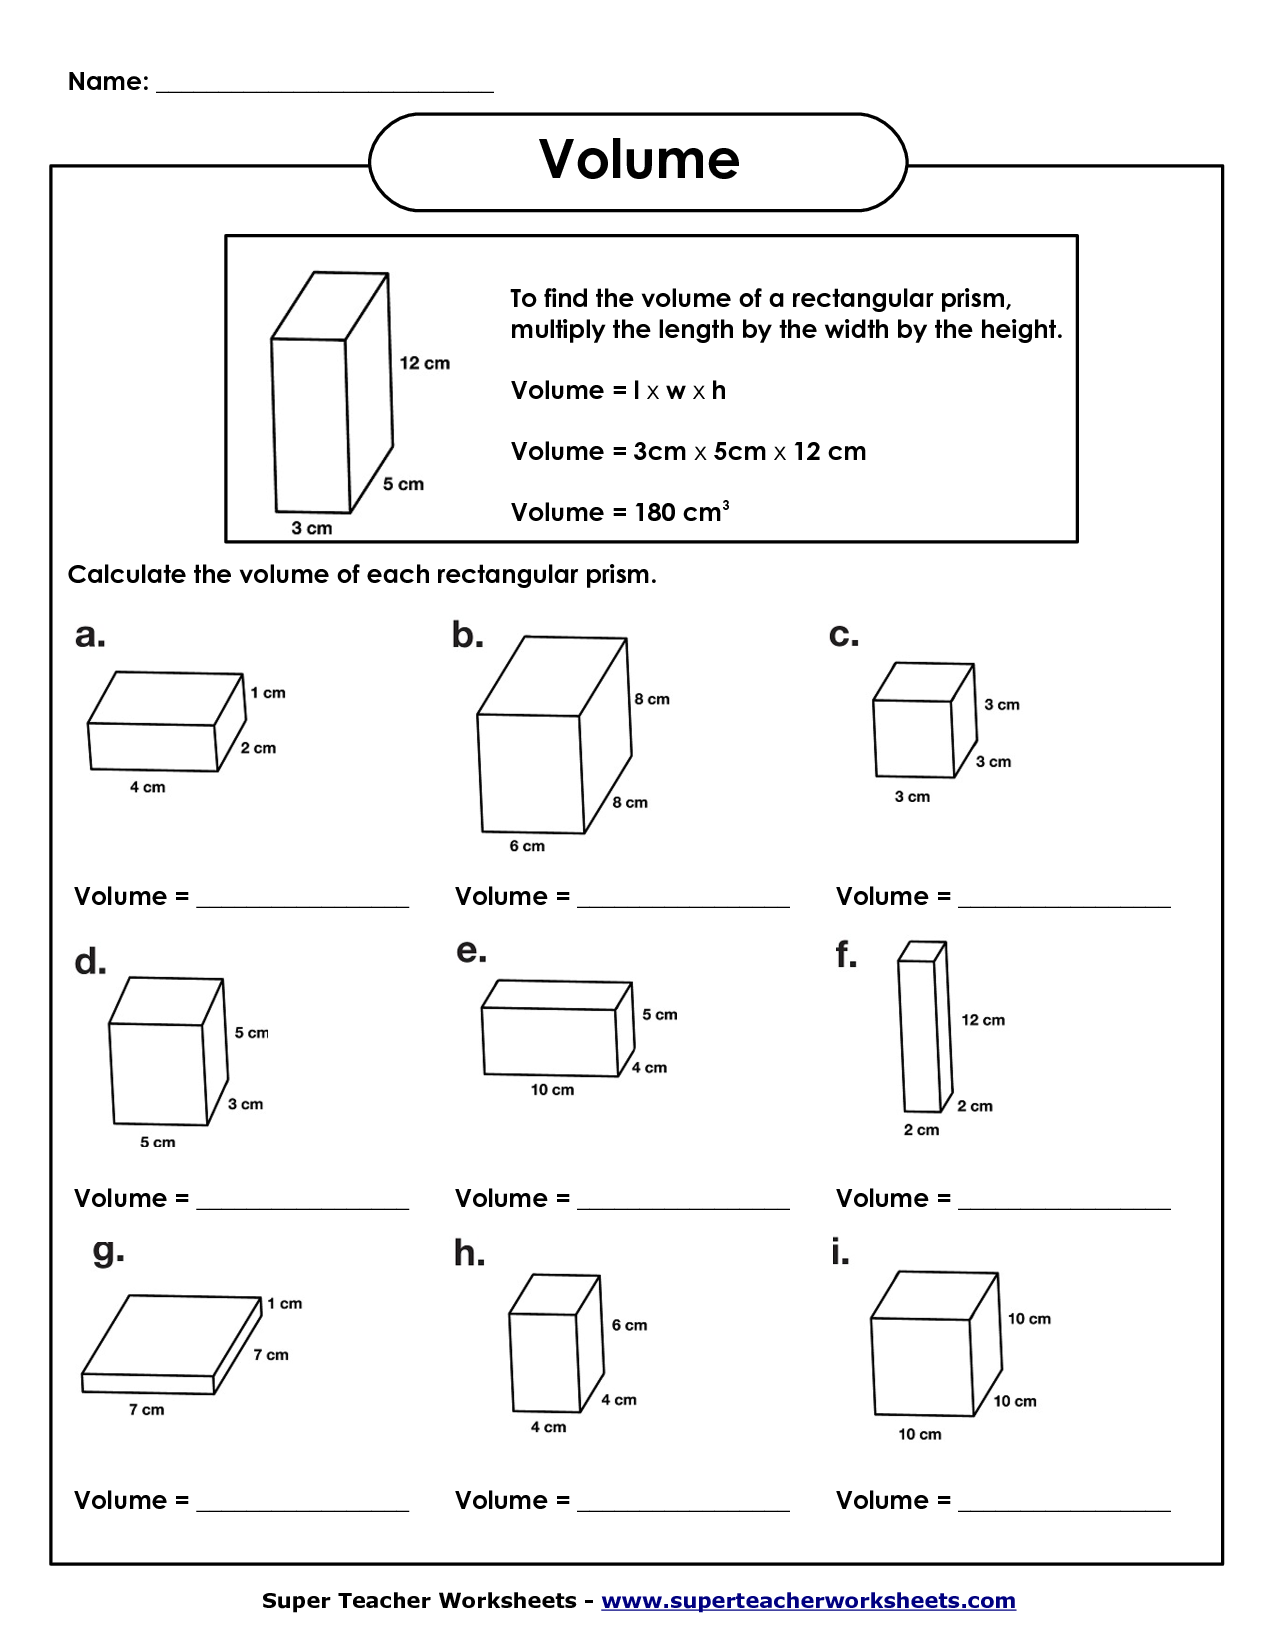 volume of rectangular prism worksheet Volume Worksheets – Rectangular Prism Worksheet